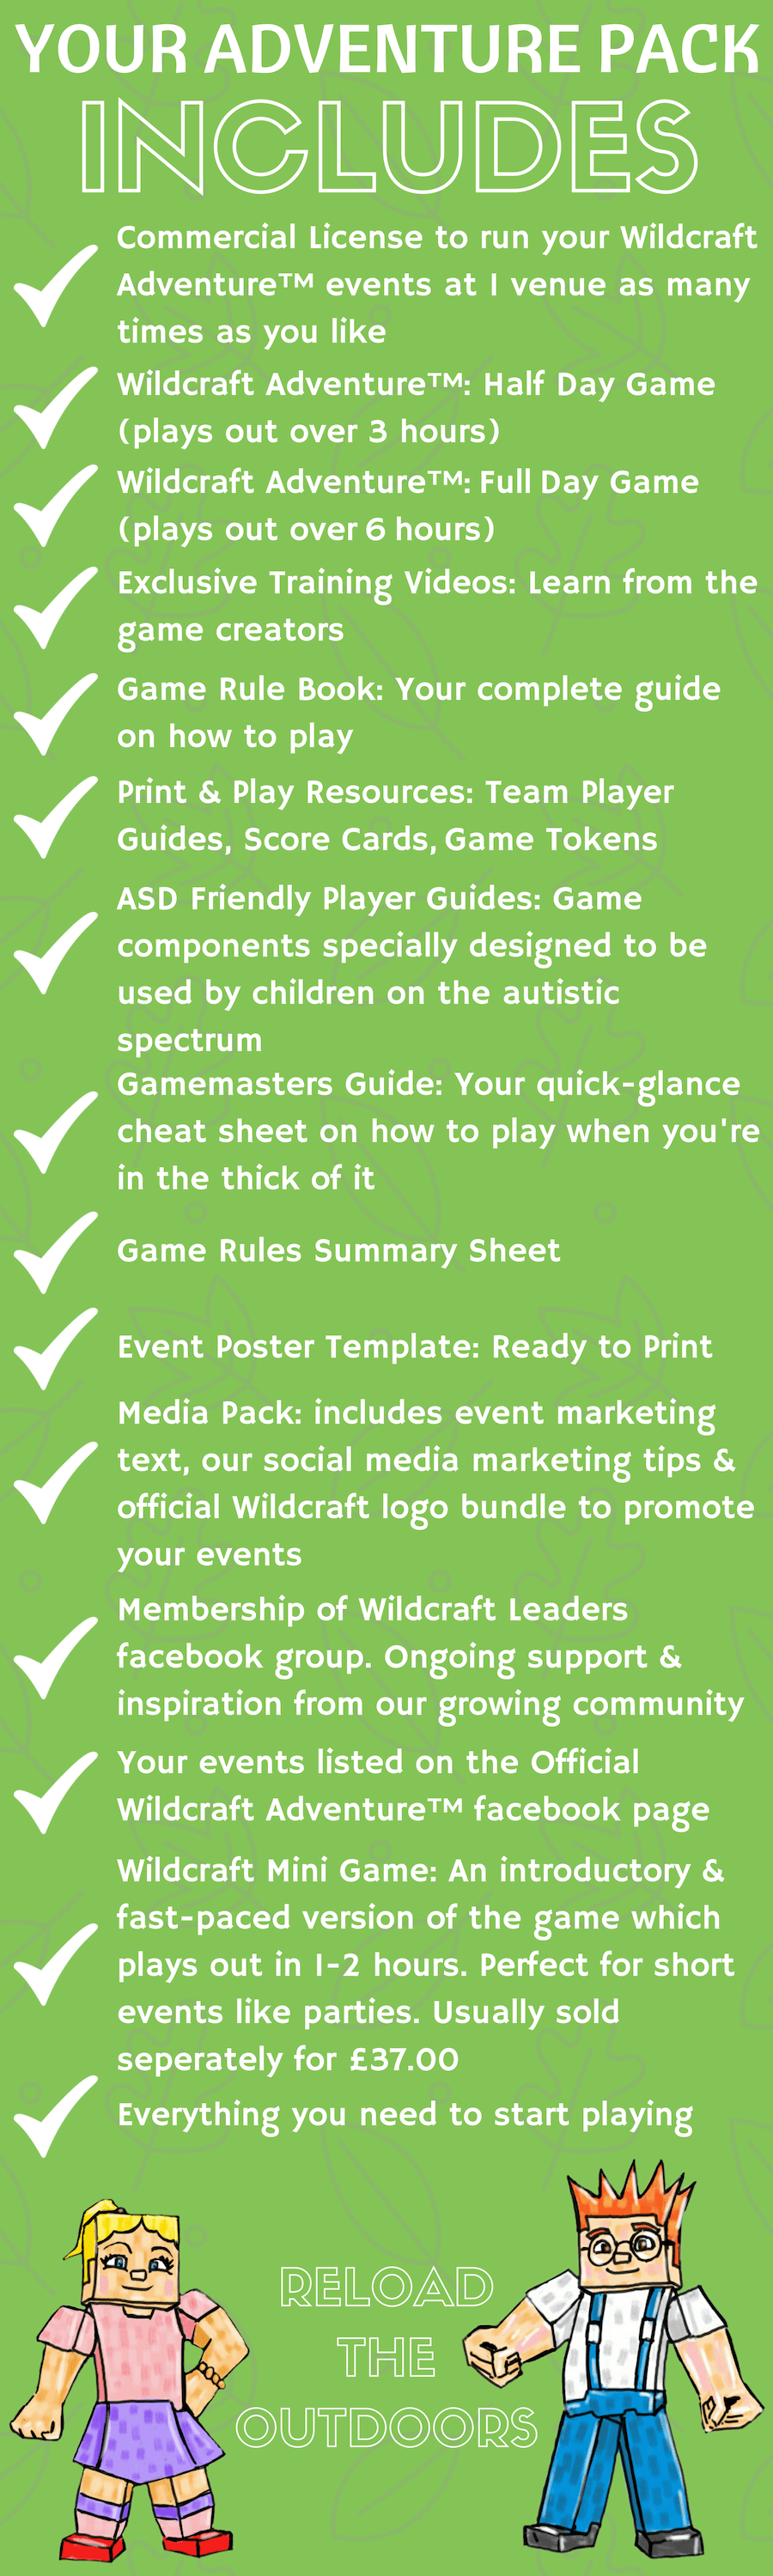 Level 1 Adventure Pack: what is included